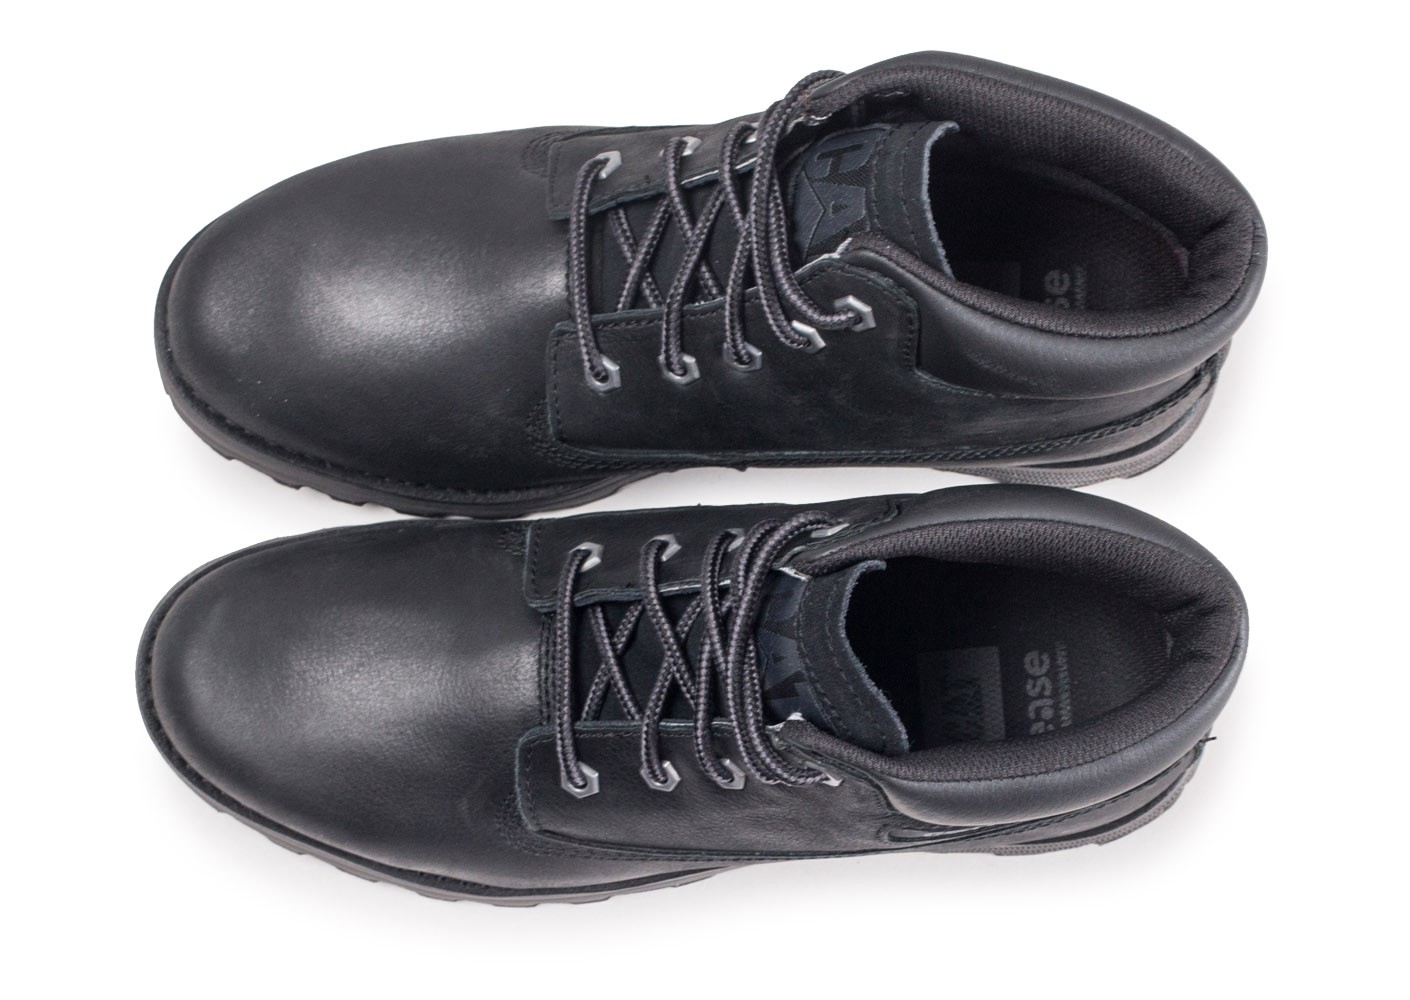 694fcdc6a5b79 13646-chaussures-h-founder-nr-t318-vue-dessus.jpg